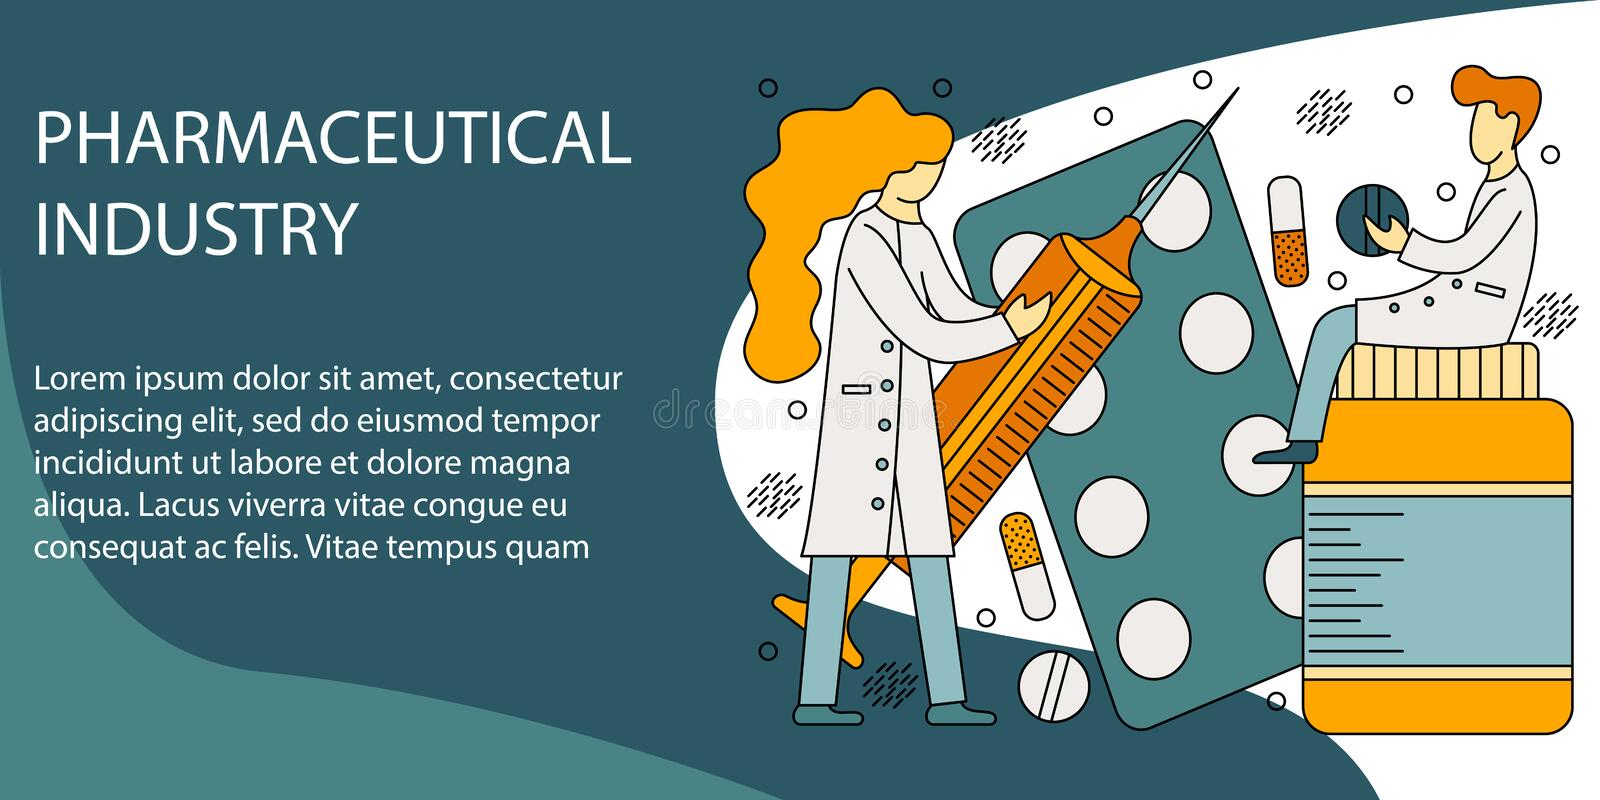 Vector illustration concept of pharmaceutical industry. Creative flat design for web banner, marketing material, business presentation royalty free illustration